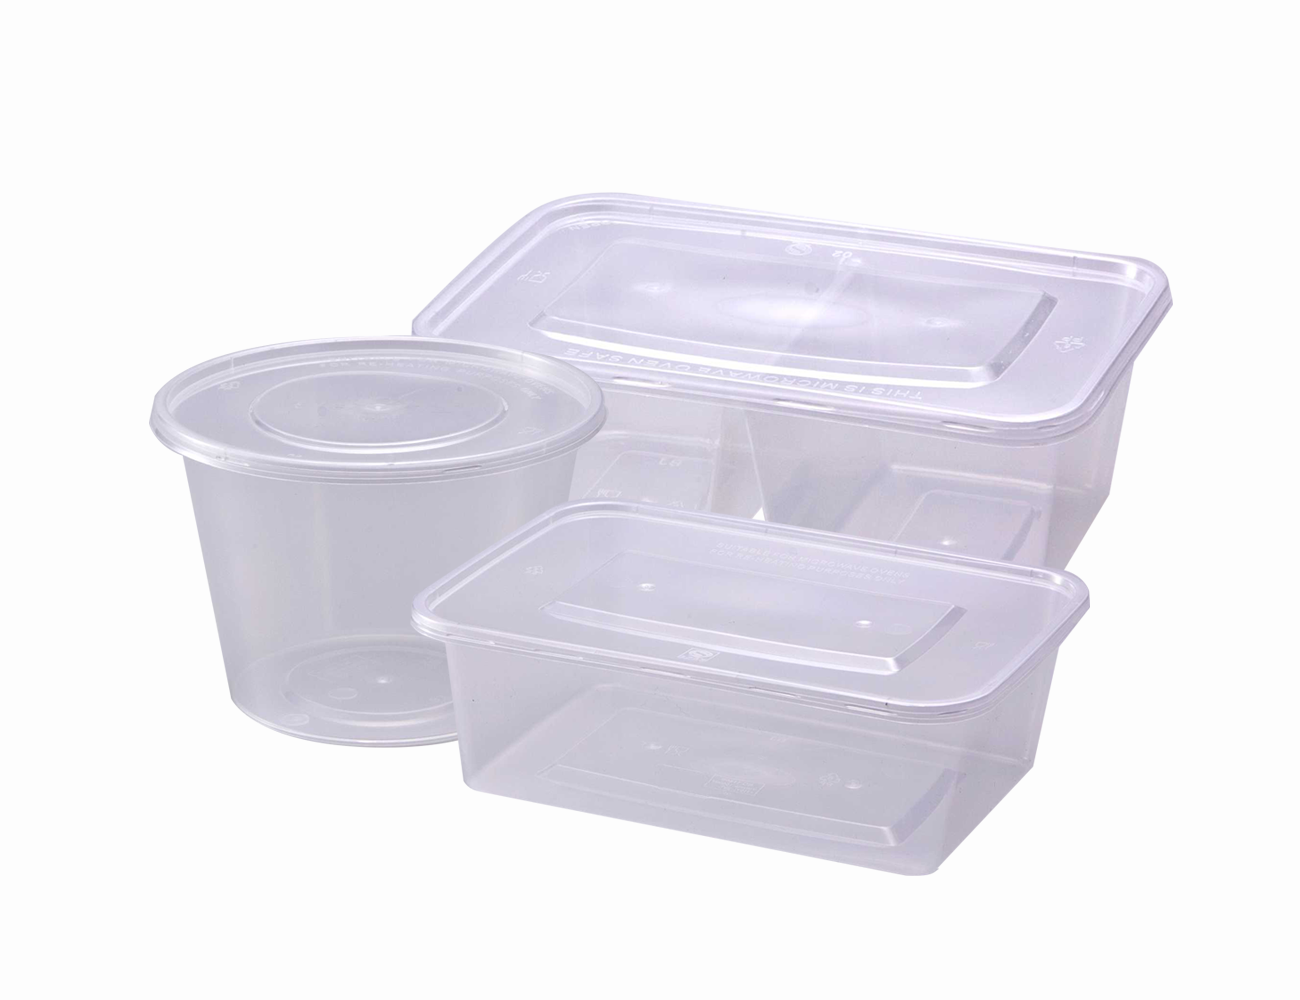 F & B Disposable Container